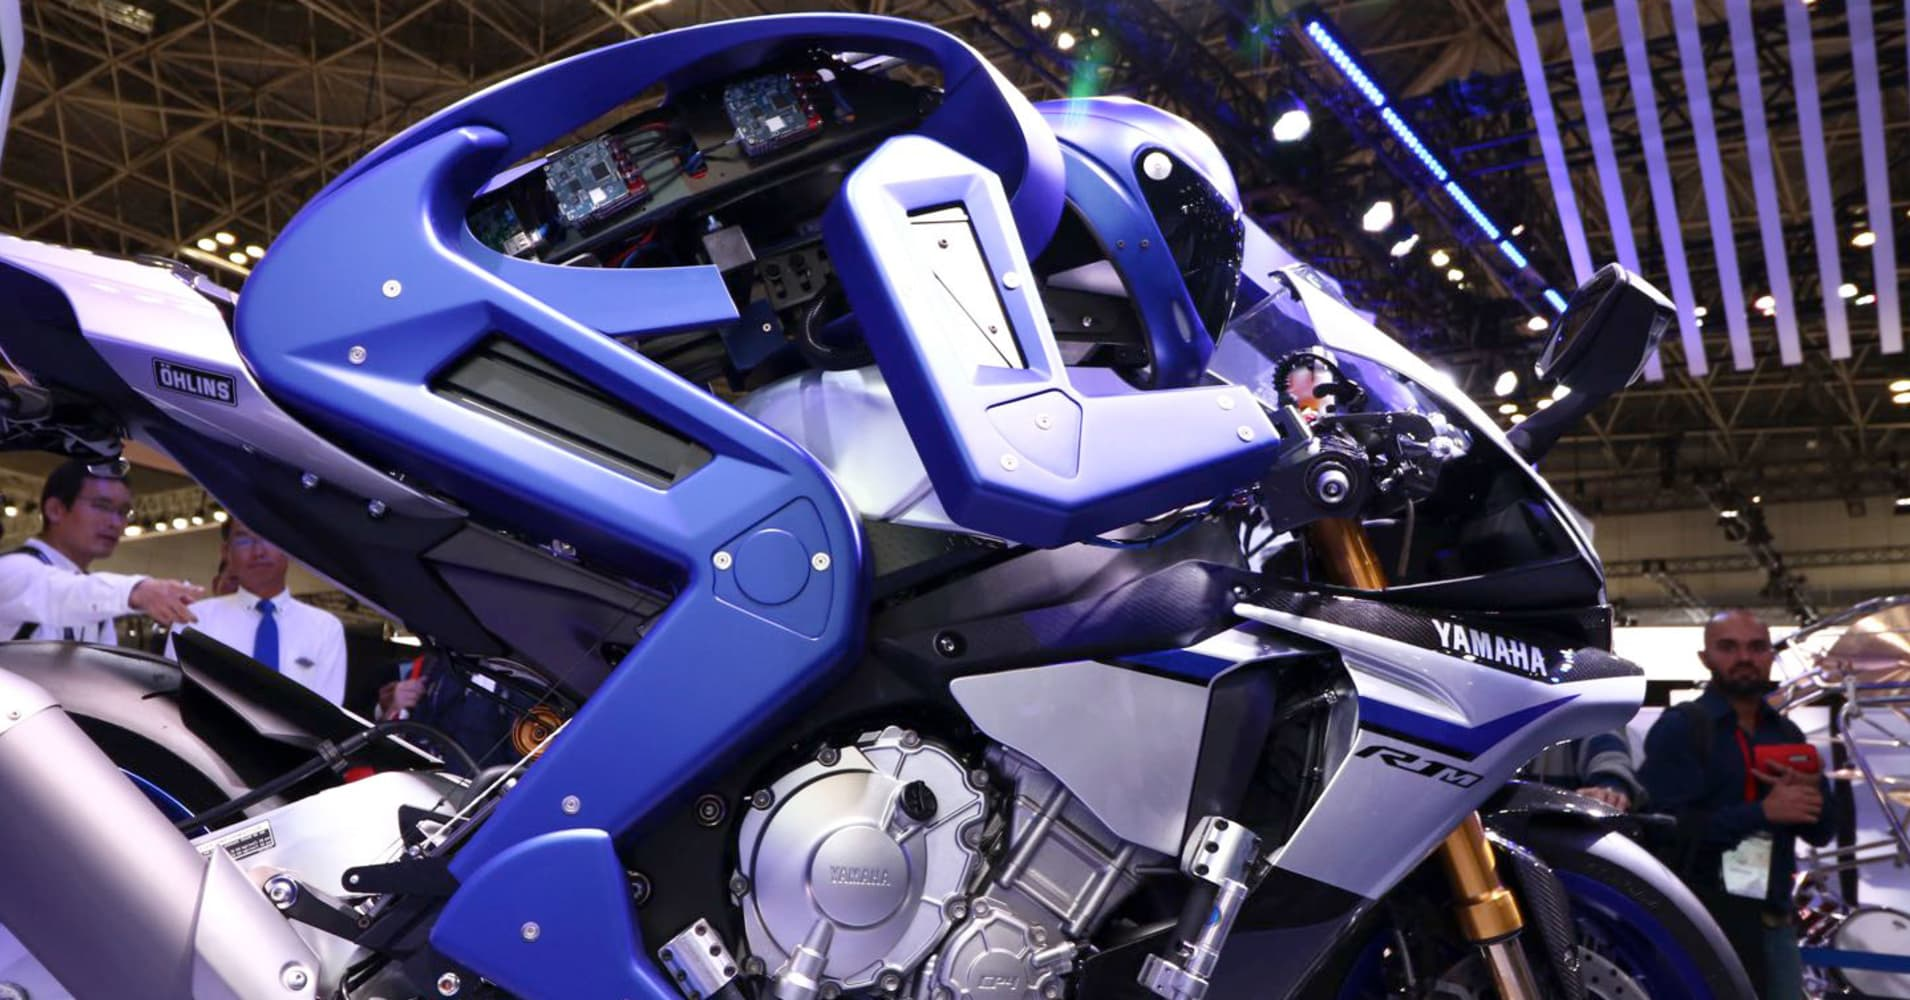 Yamaha Develops Self Driving Motorcycle